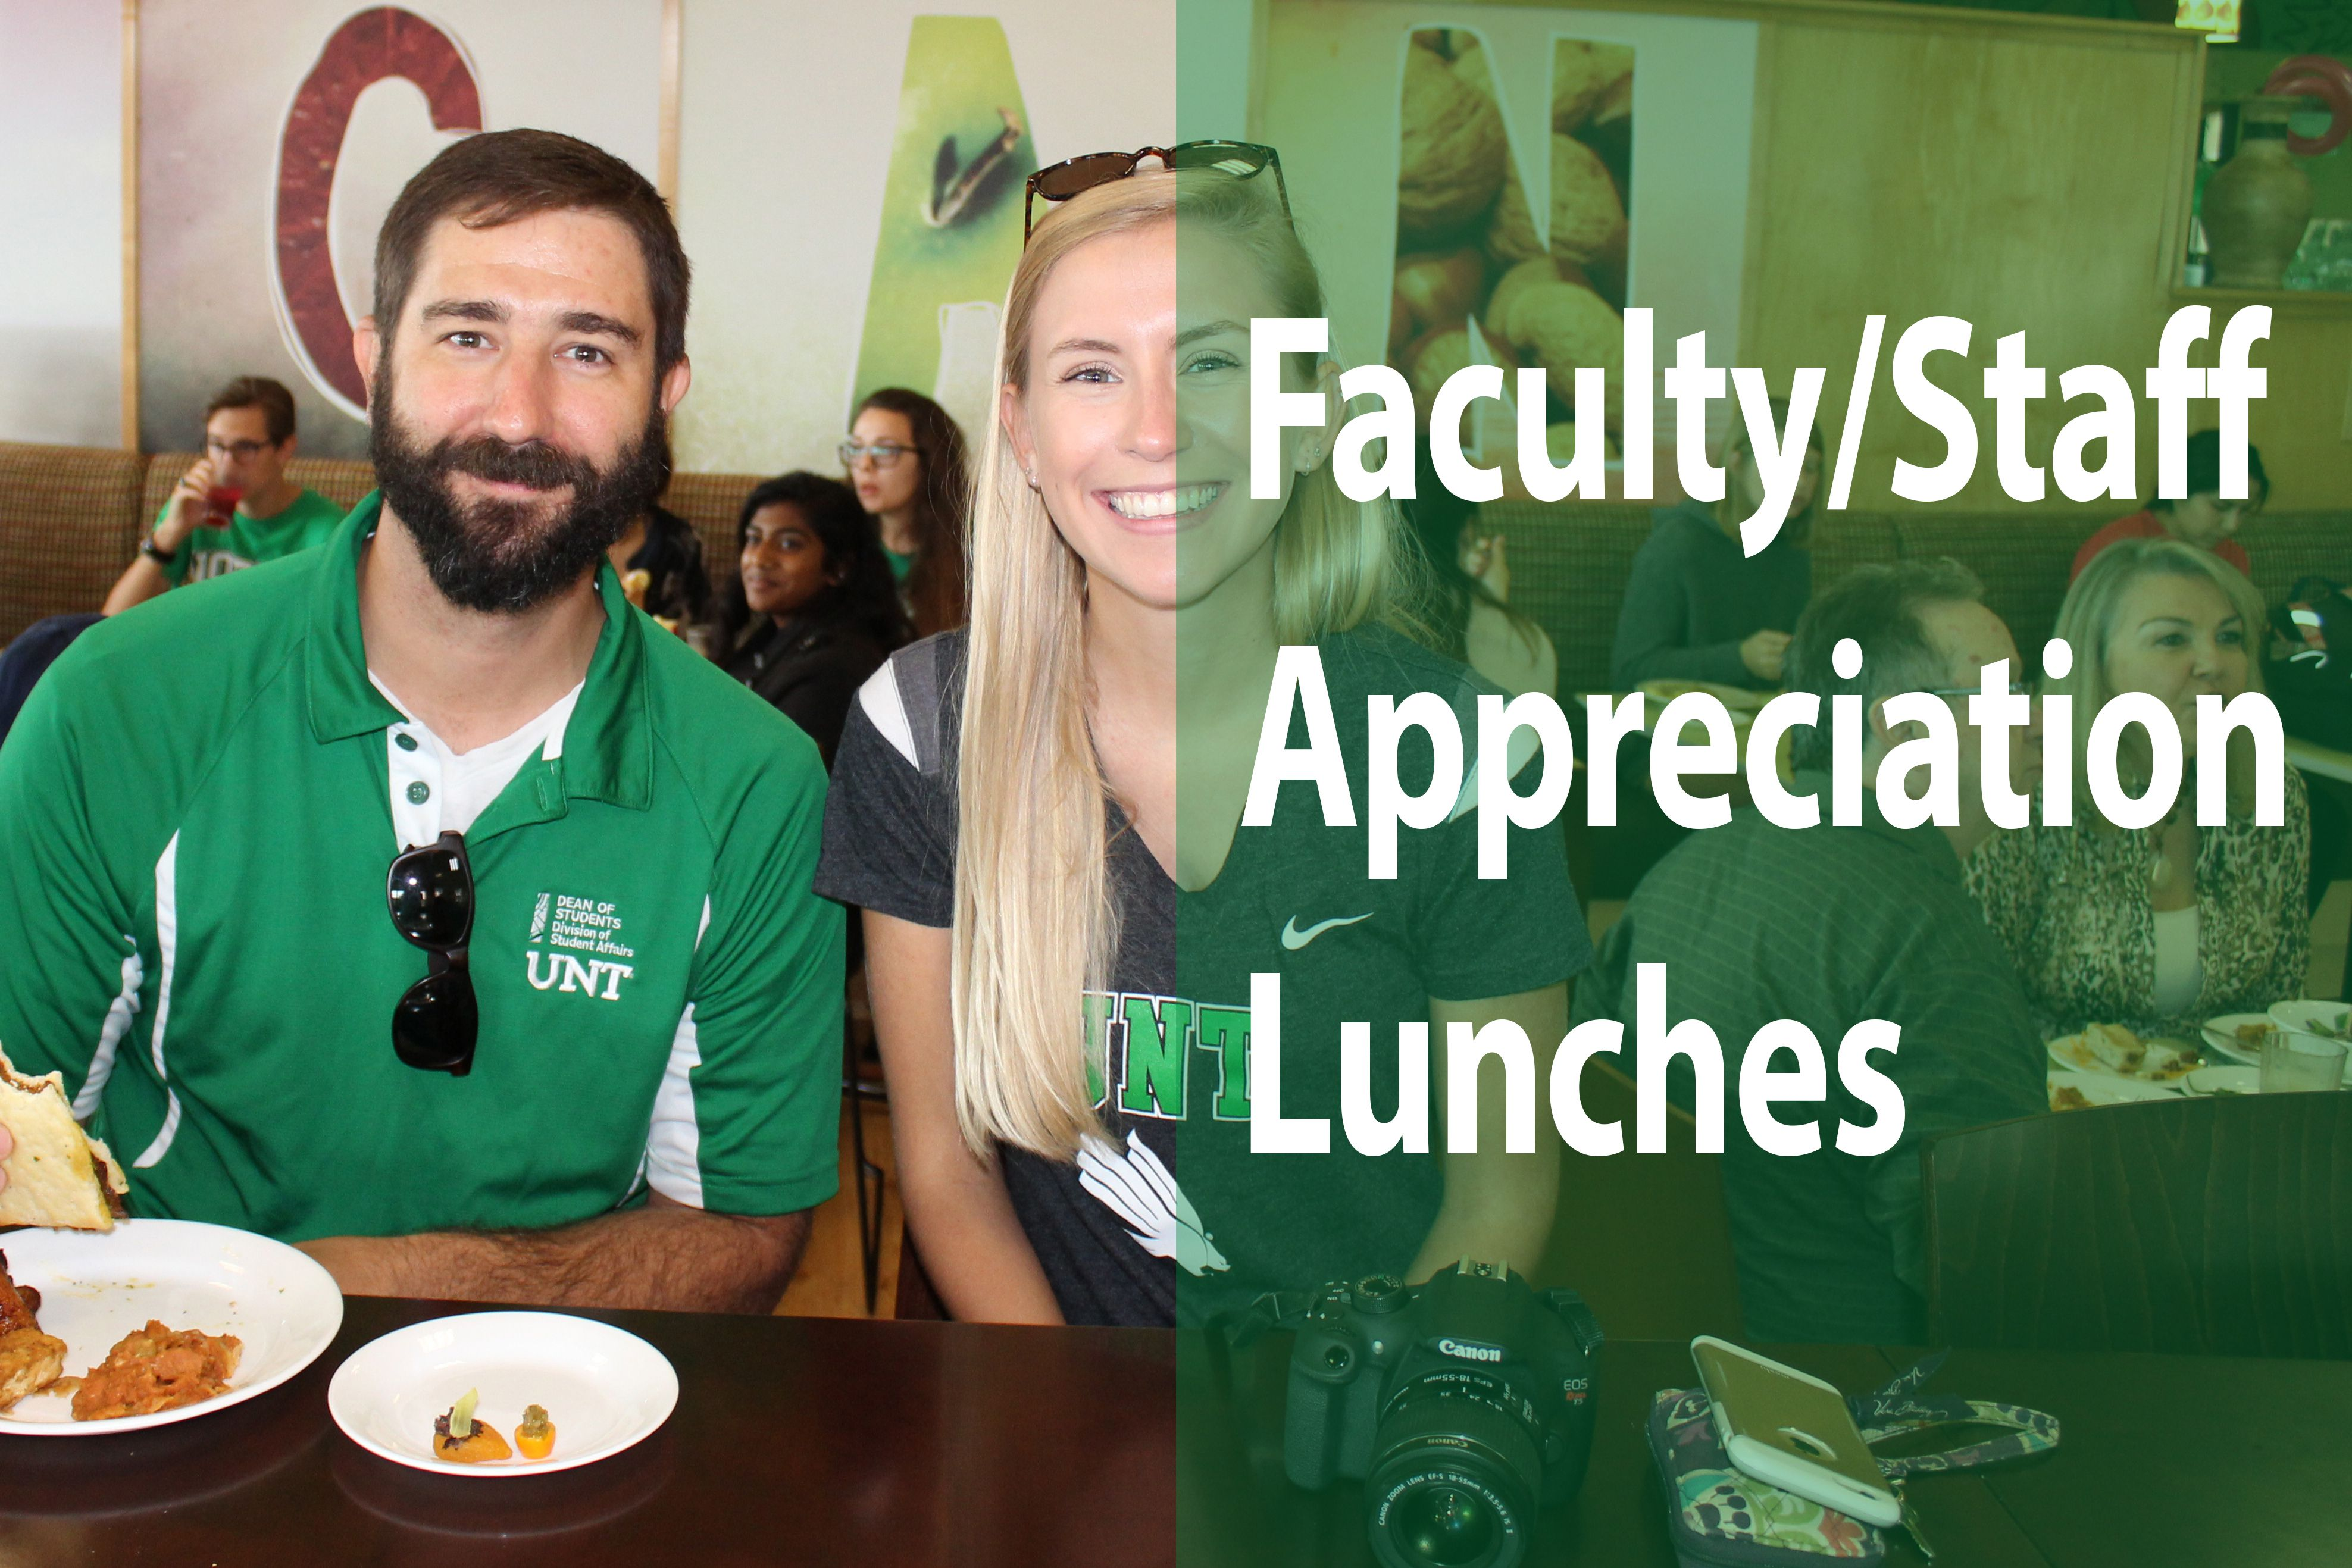 Faculty/Staff Appreciation Lunches